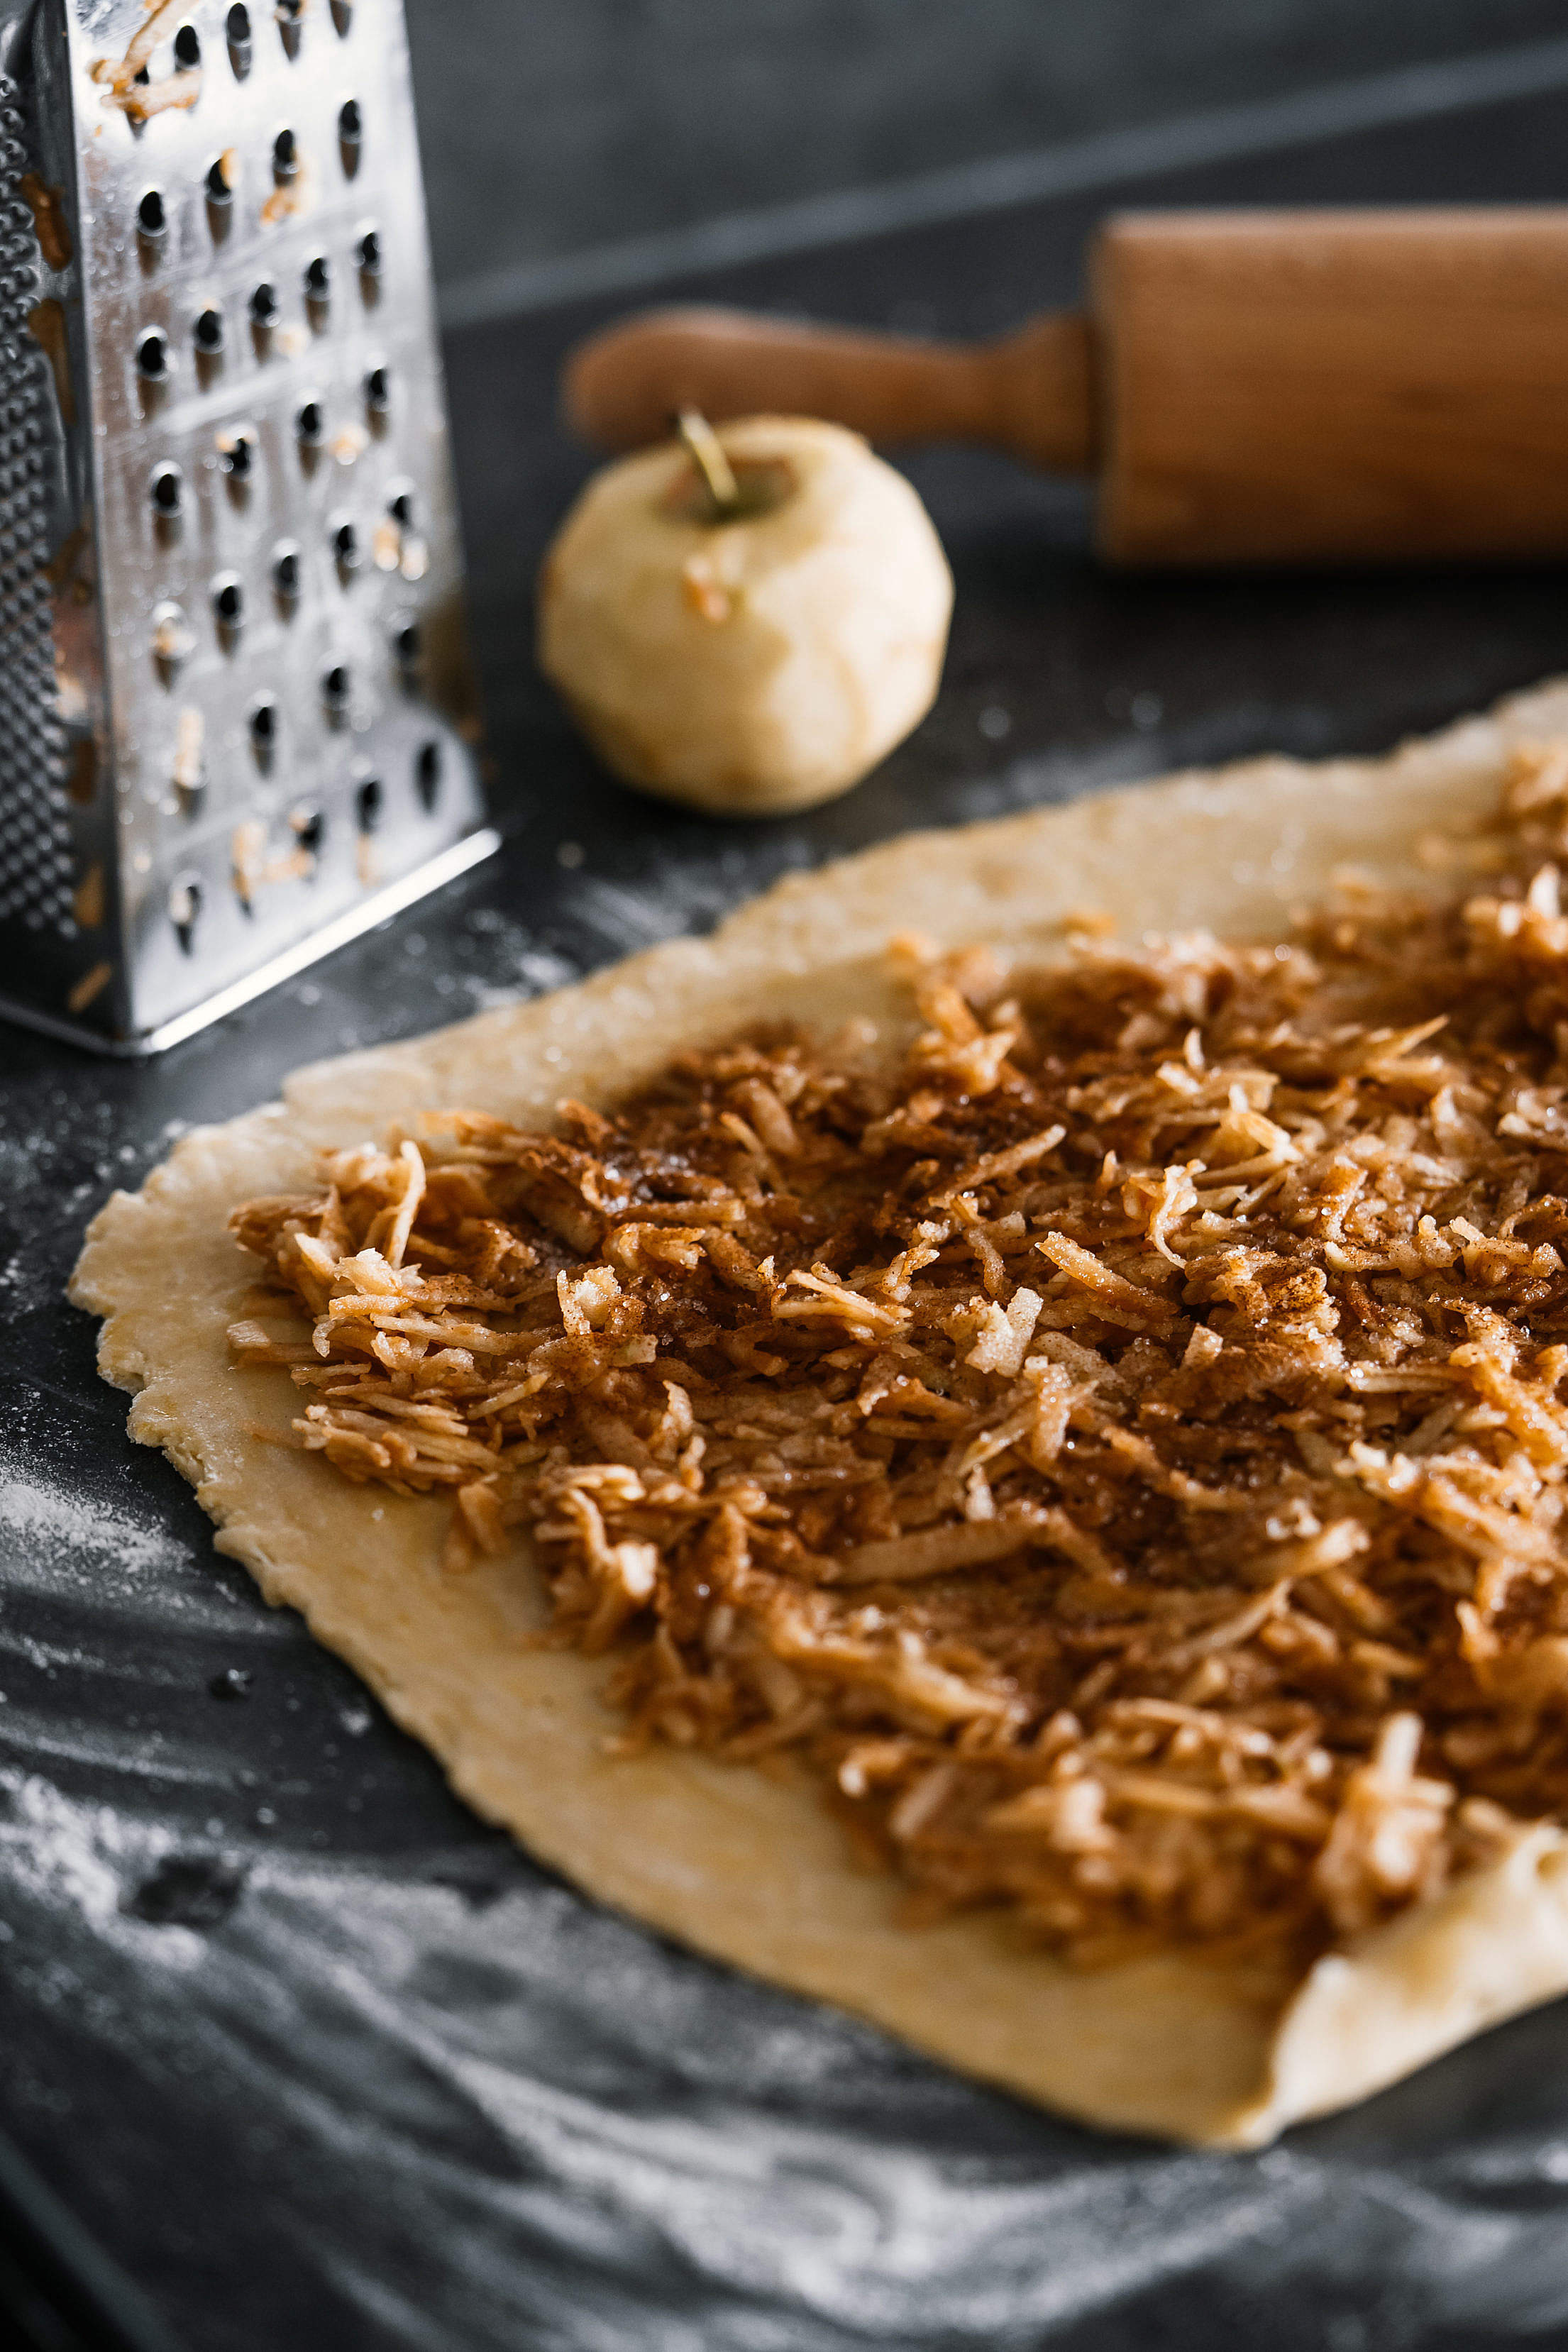 Making Homemade Apple Strudel Vertical Free Stock Photo